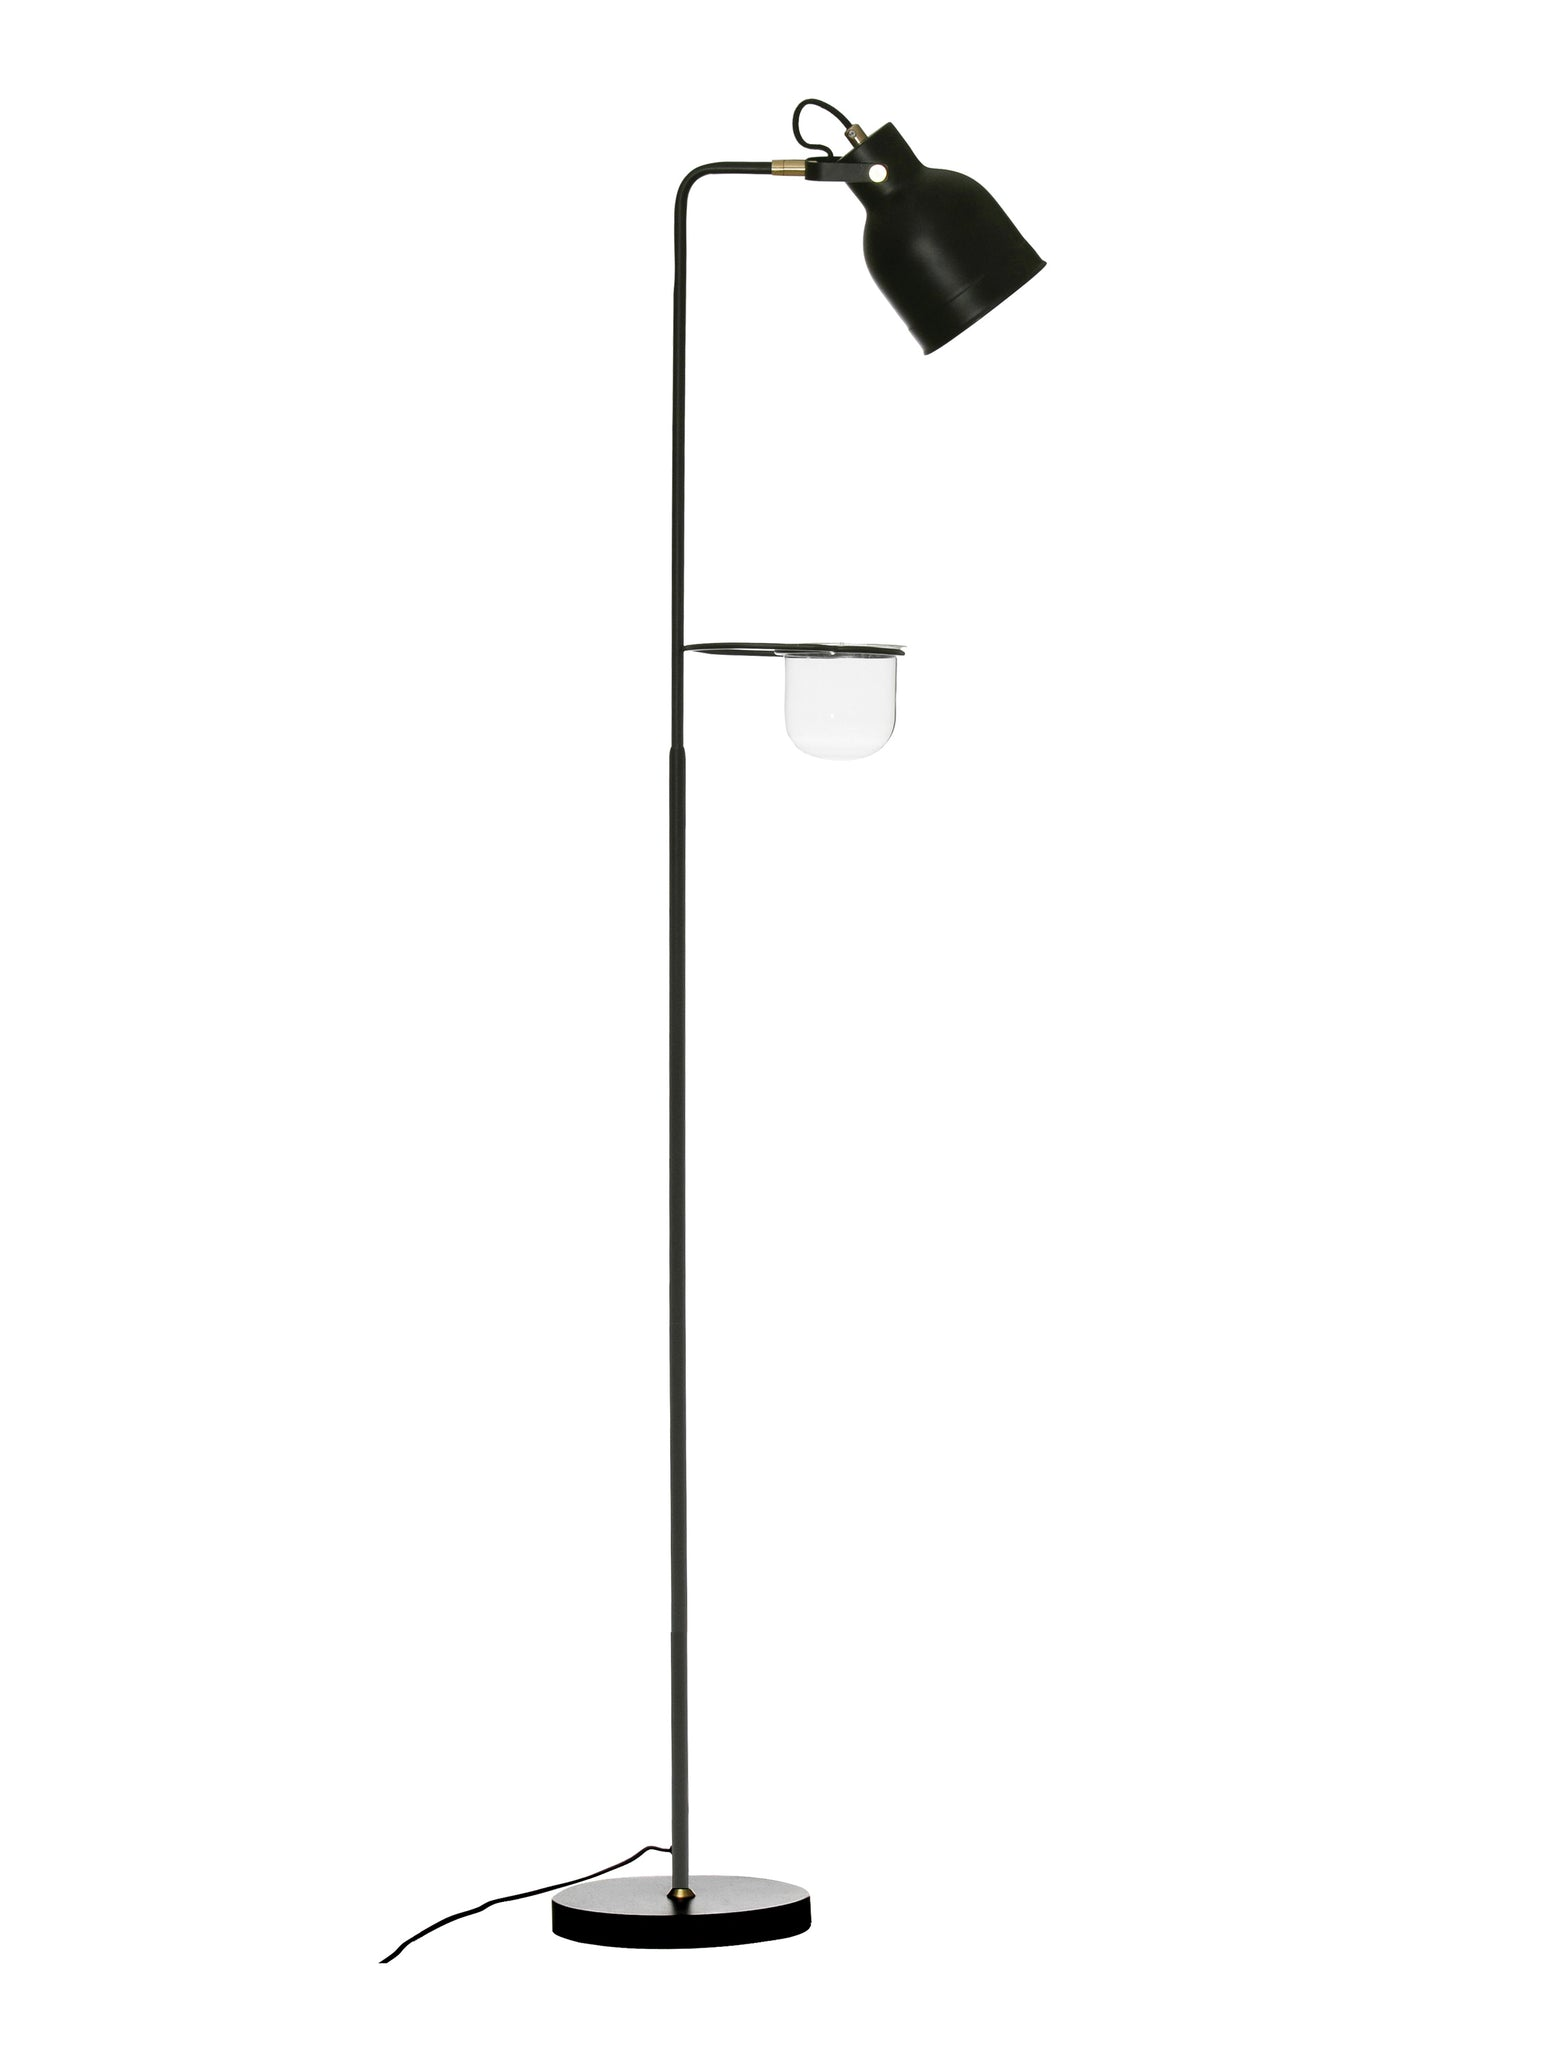 "62""H Metal Floor Lamp with Glass Planter/Vase in Attached Holder"